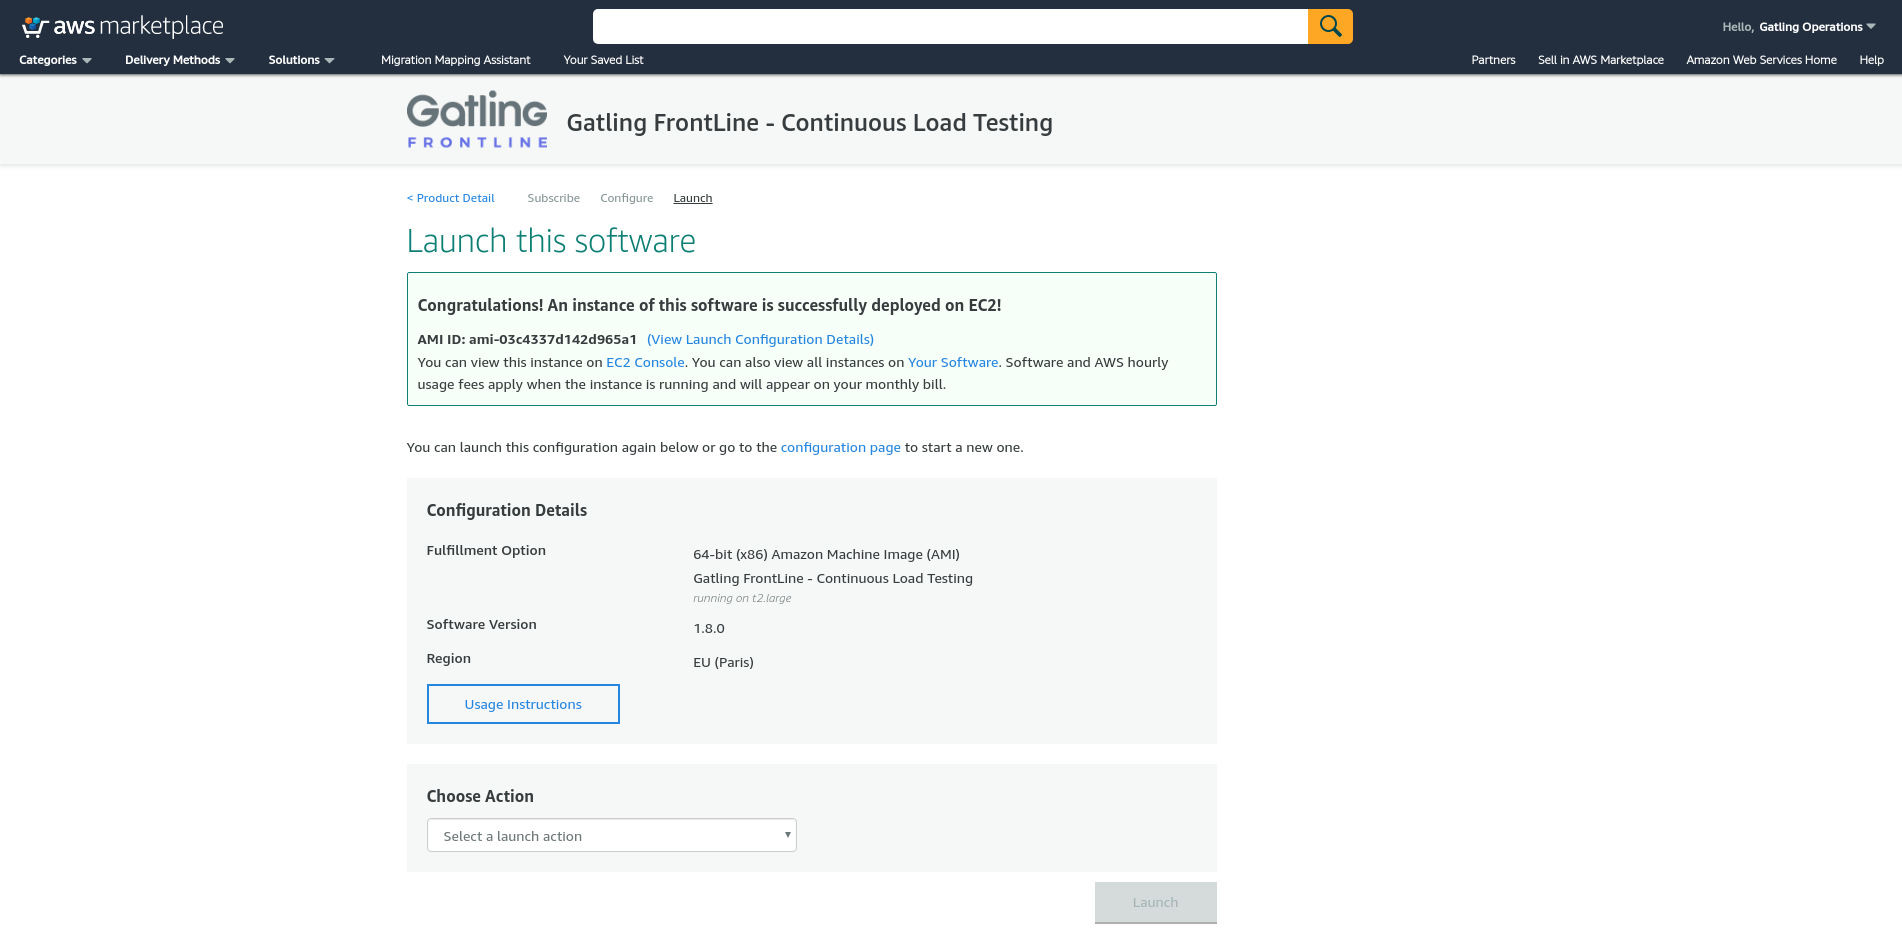 Gatling FrontLine in AWS Marketplace - congratulations screen